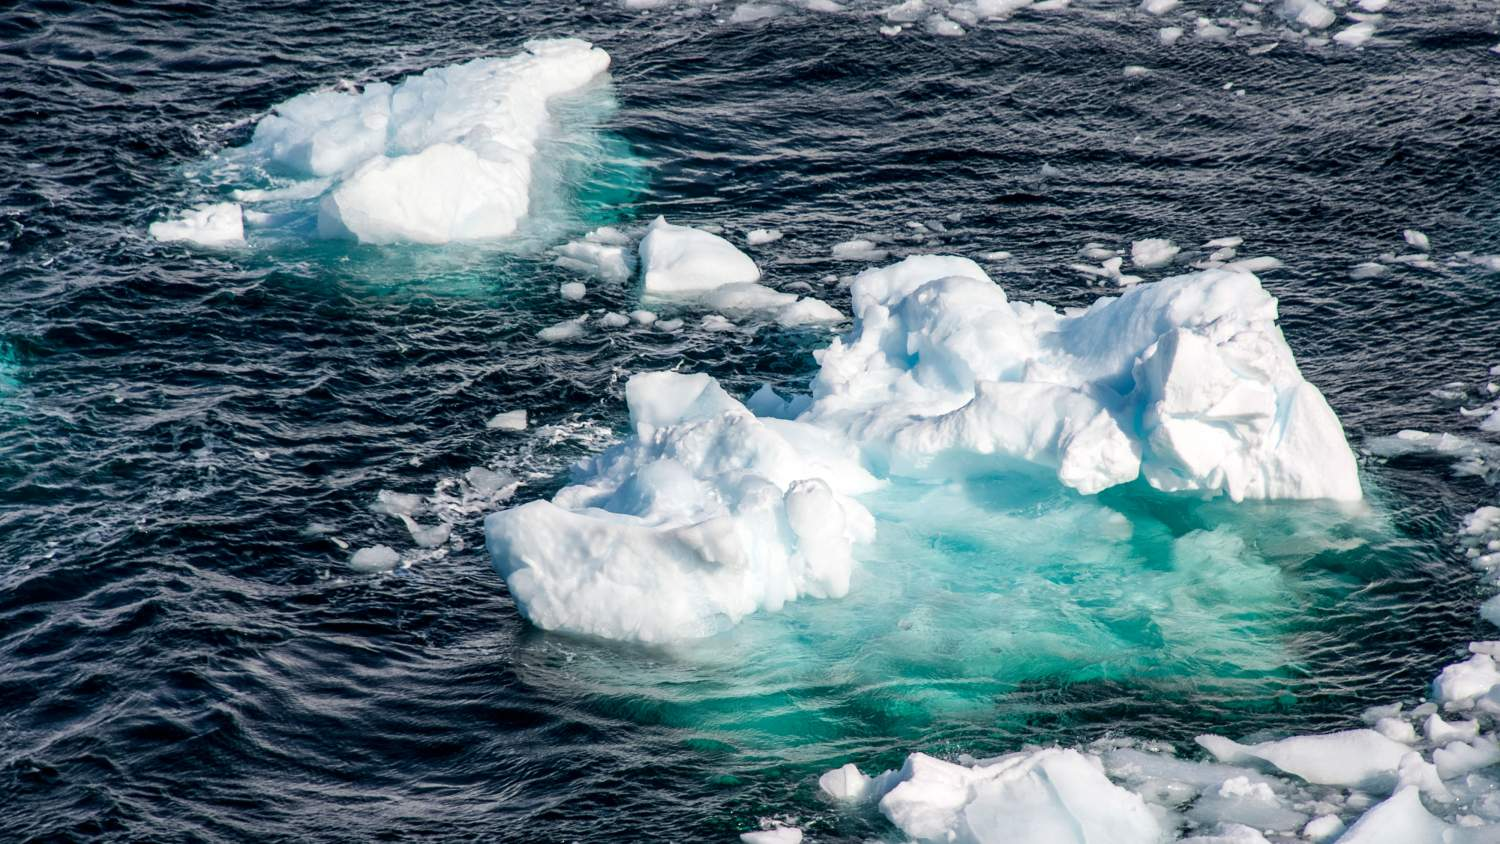 Sea ice in the ocean